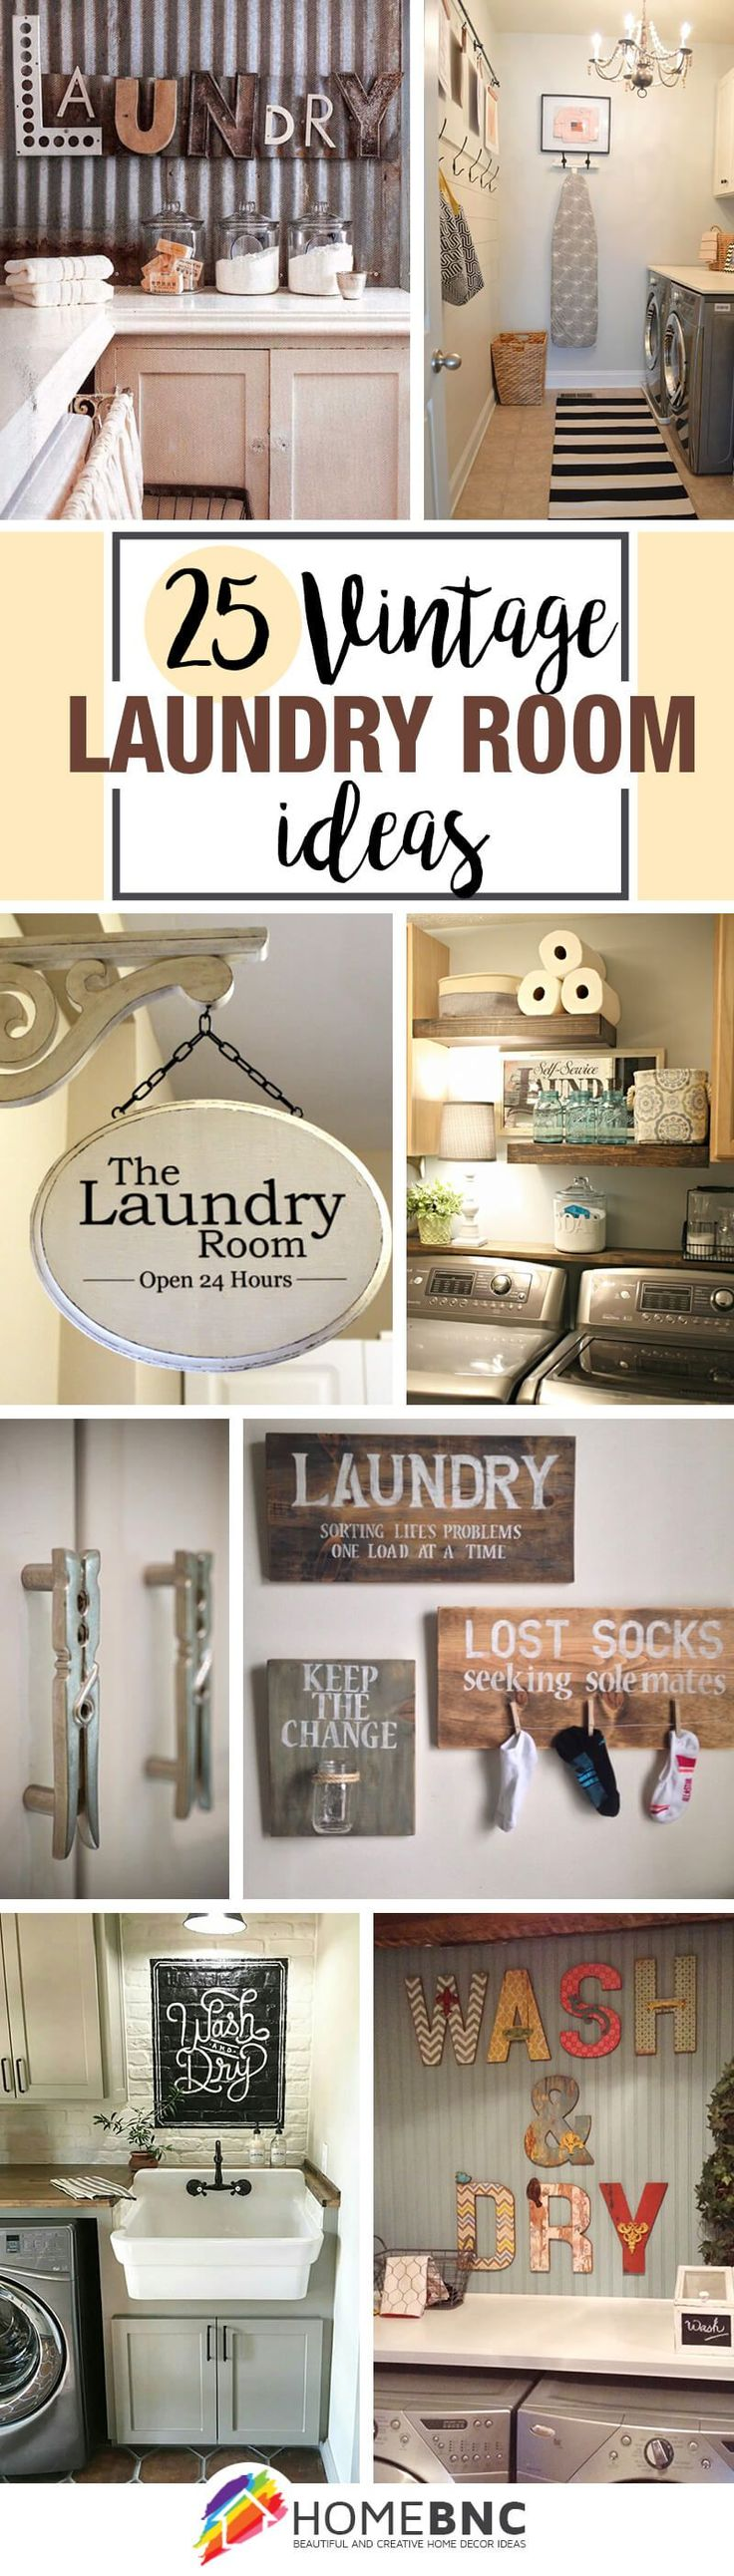 Vertical Laundry Sign Best 25 Laundry Signs Ideas On Pinterest  Laundry Decor Laundry